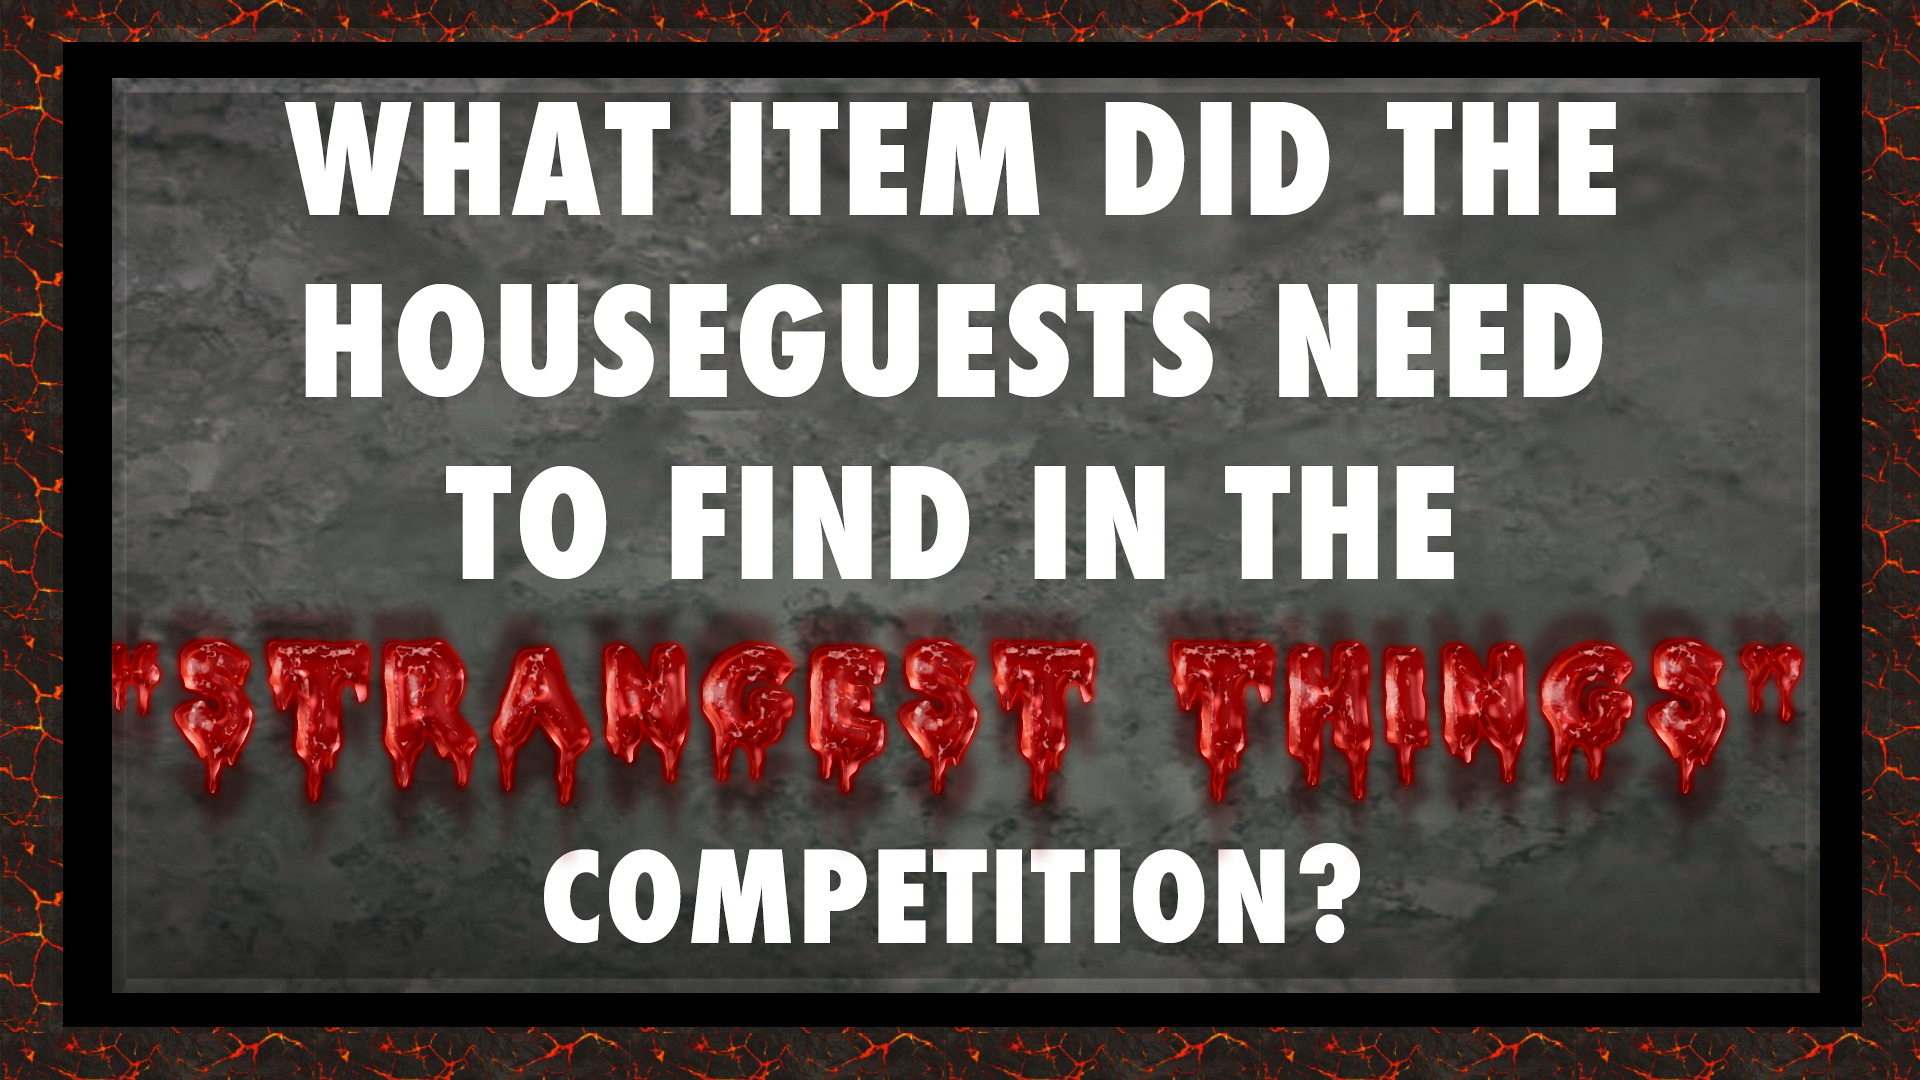 """What item did the Houseguests need to find in the """"Strangest Things"""" Temptation Competition?"""